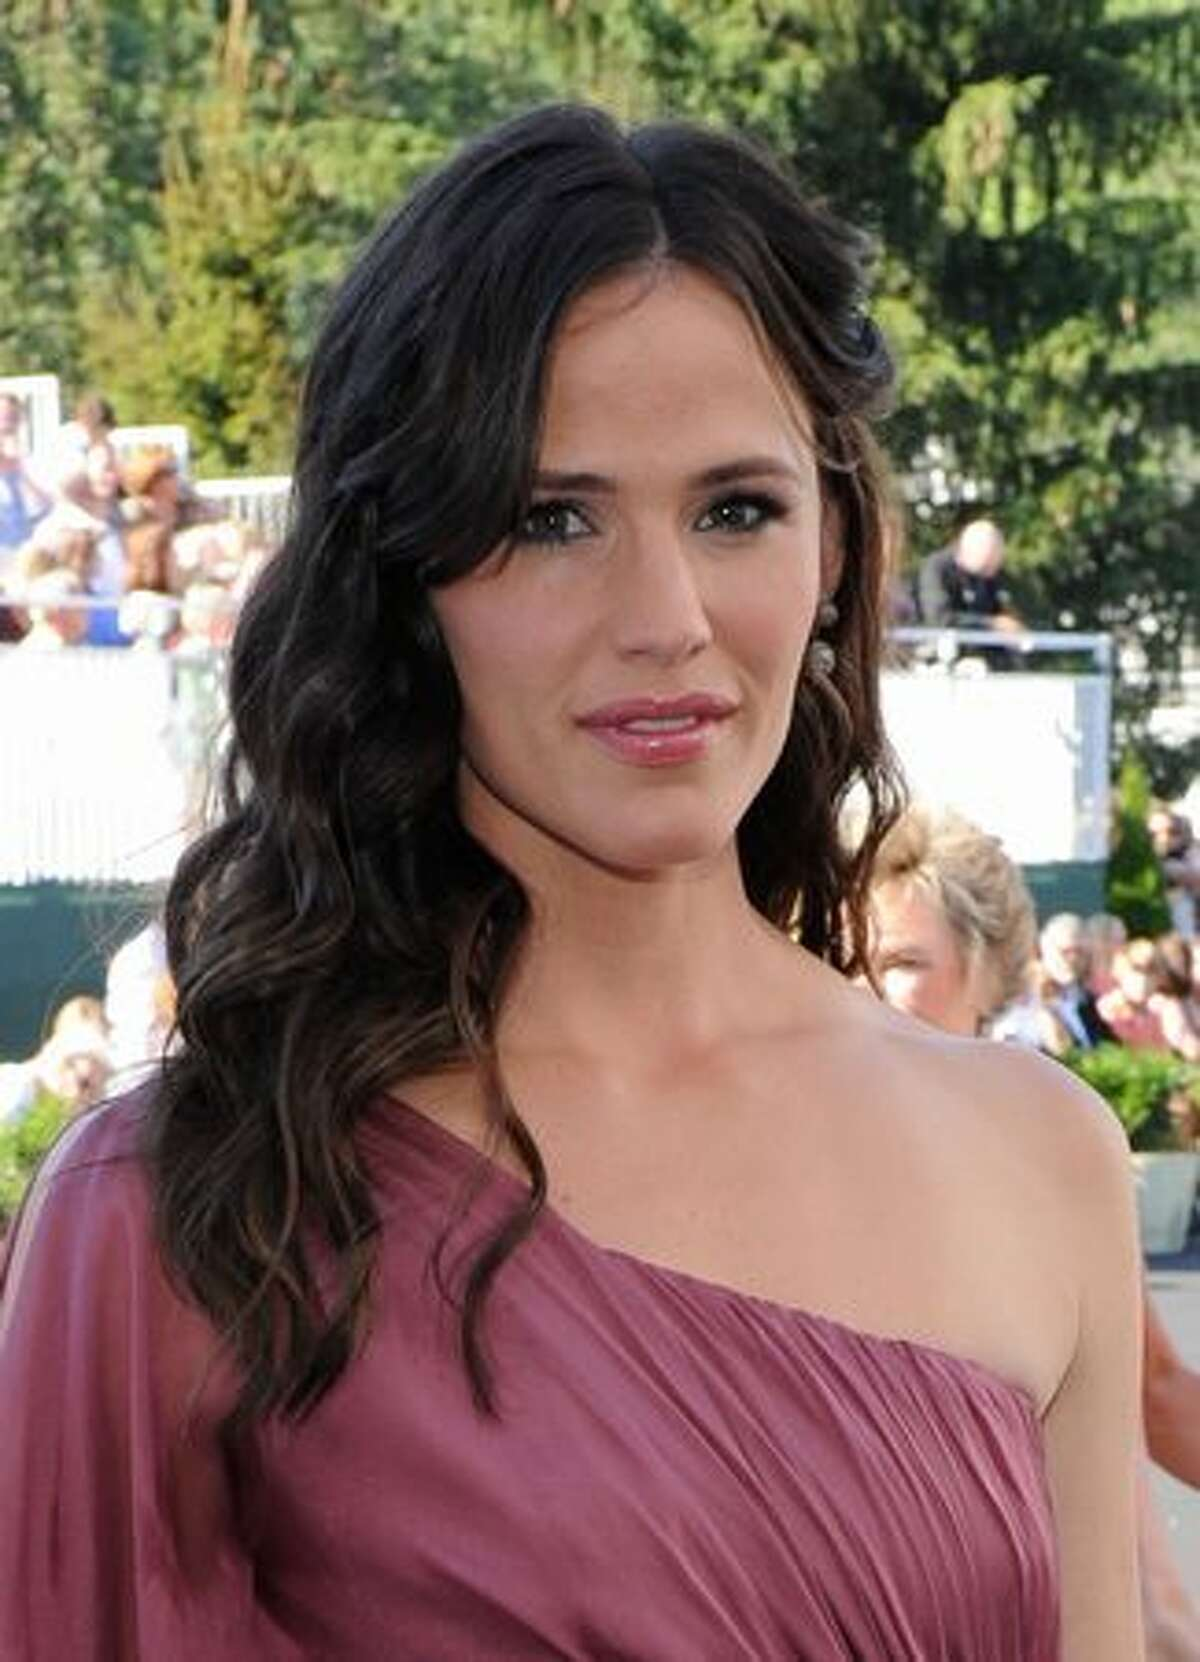 Actress Jennifer Garner attends the grand opening of the Casino Club at The Greenbrier.